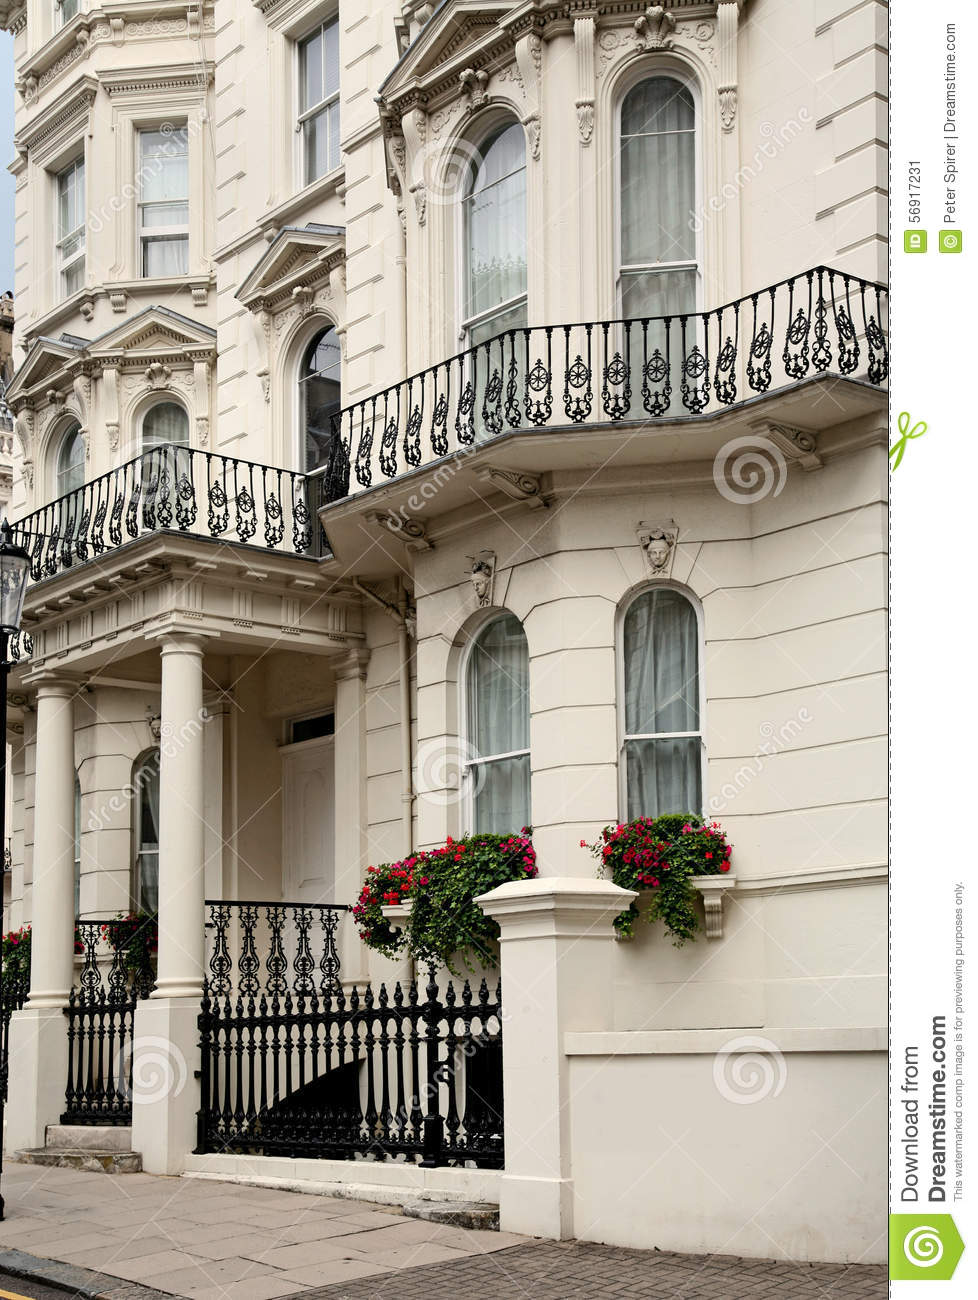 Awesome maison urbaine victorienne londres with maison a londres